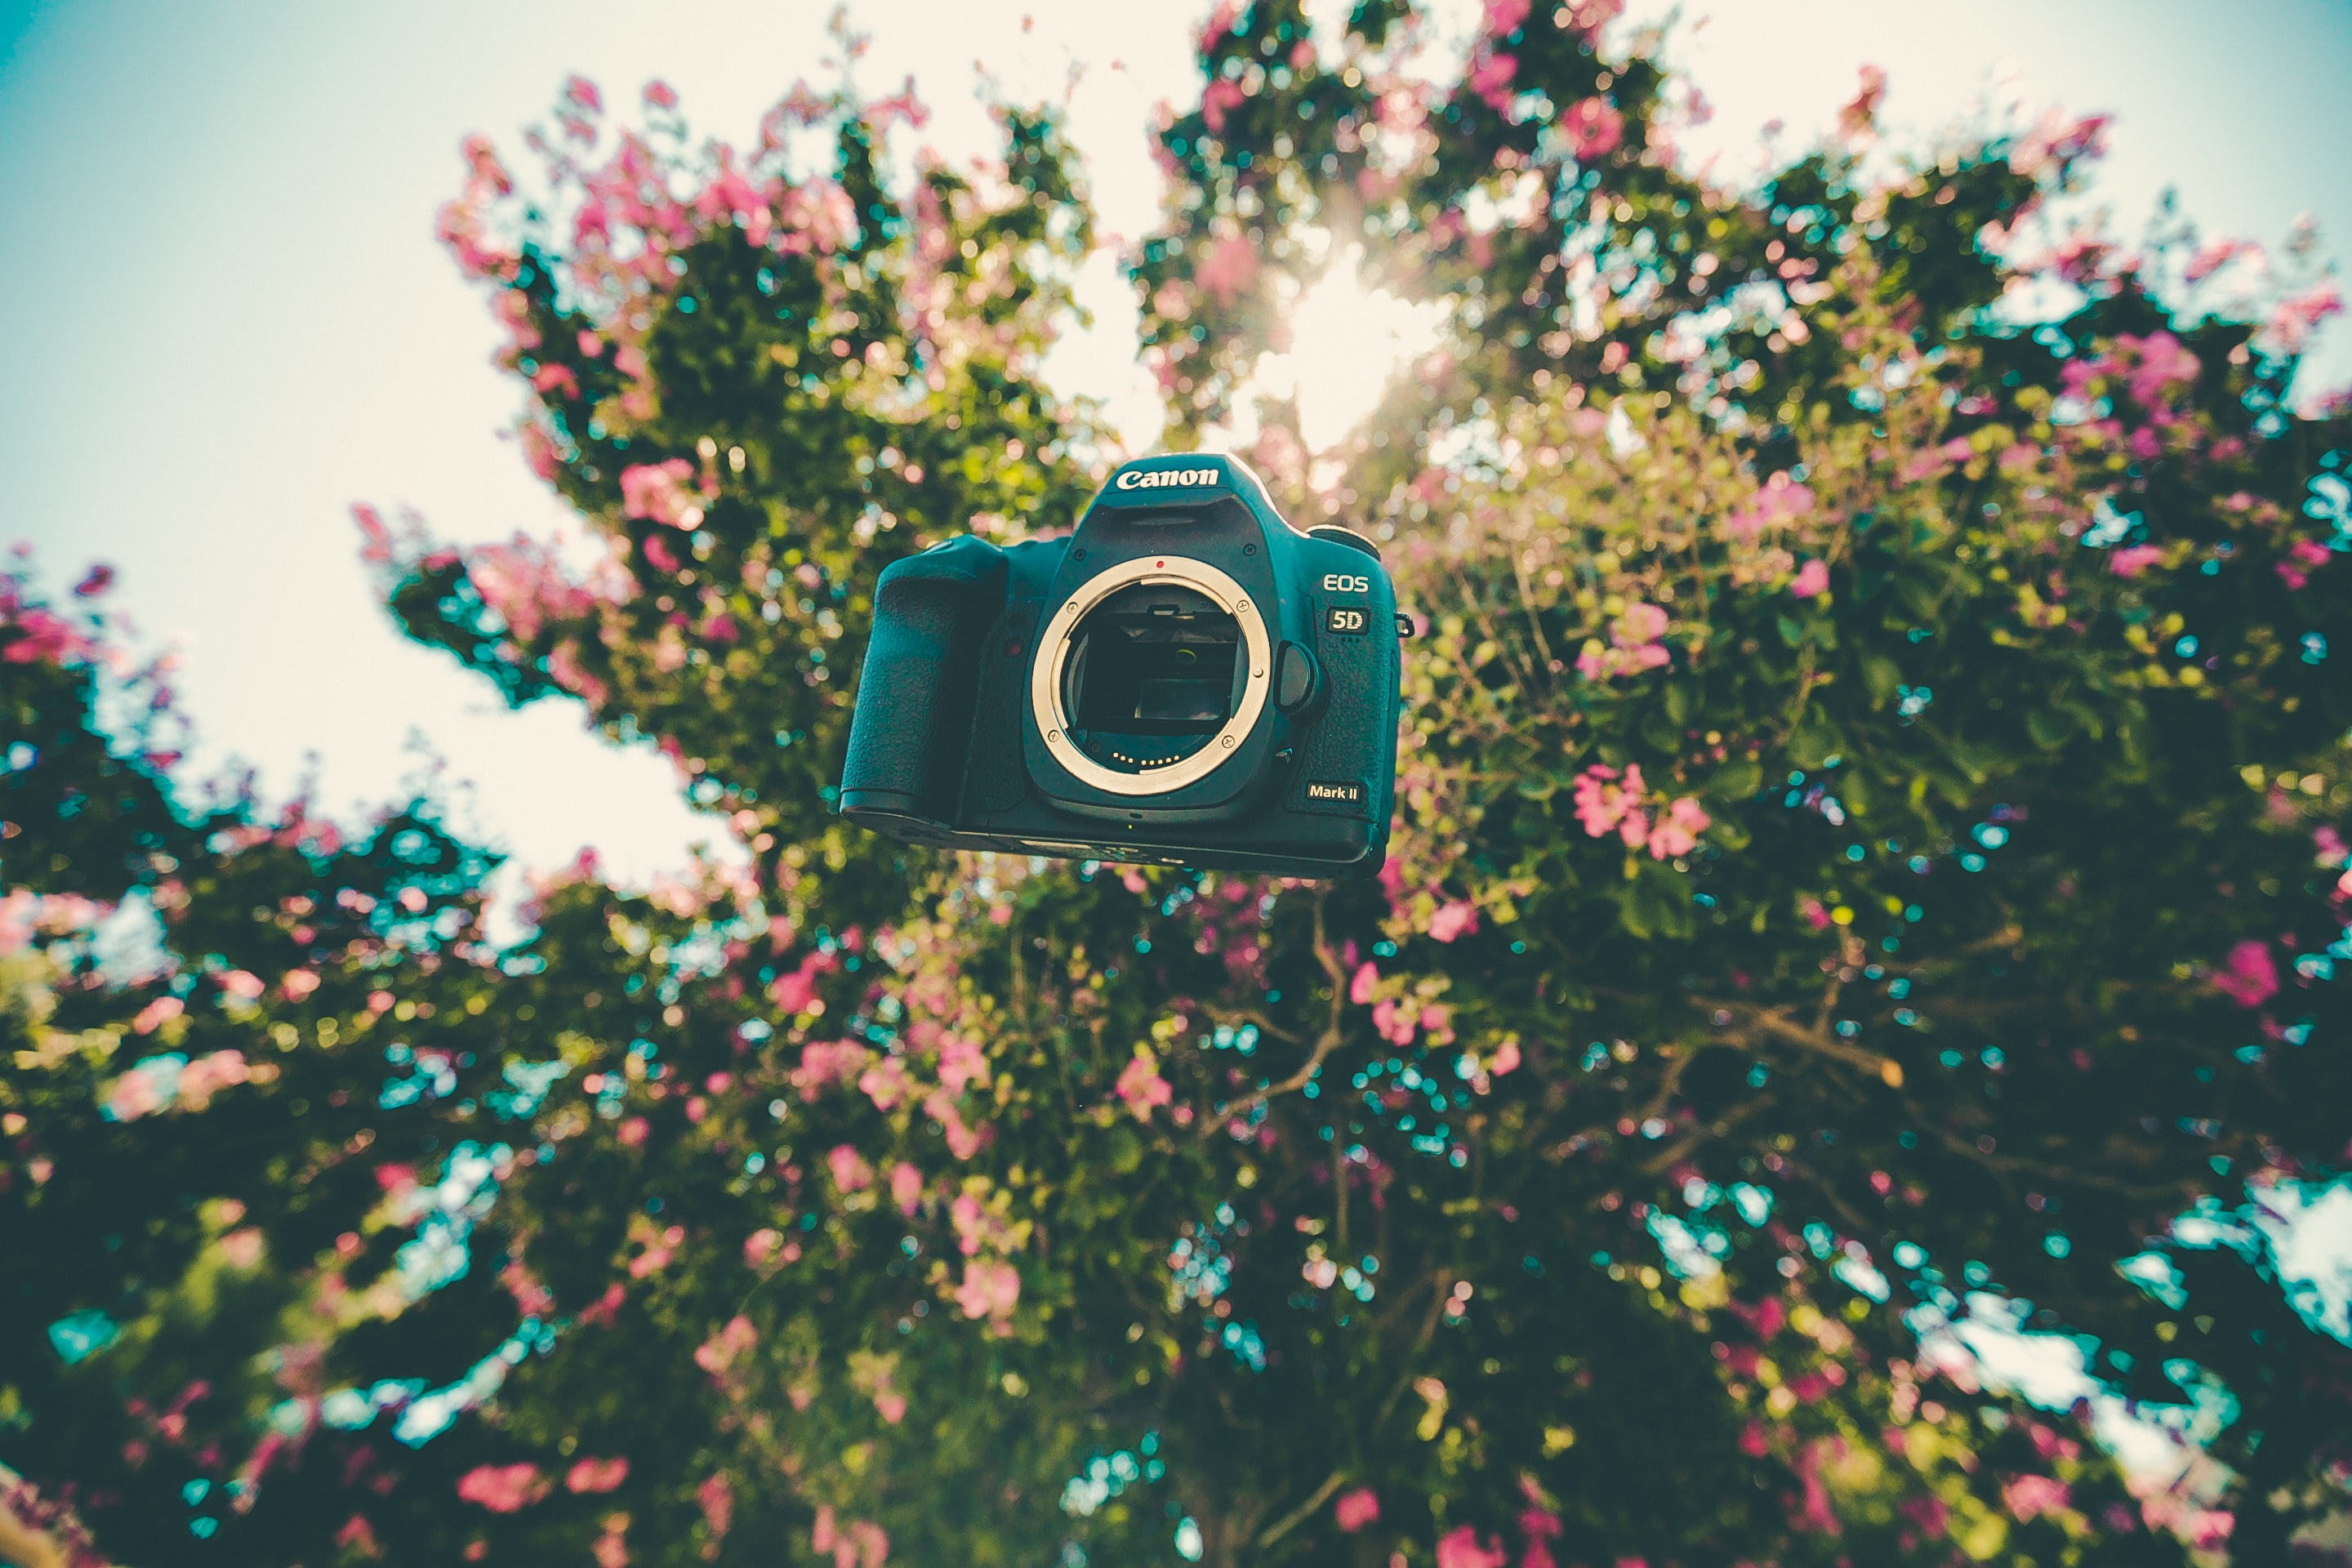 black Canon EOS on mid air near trees during daytime